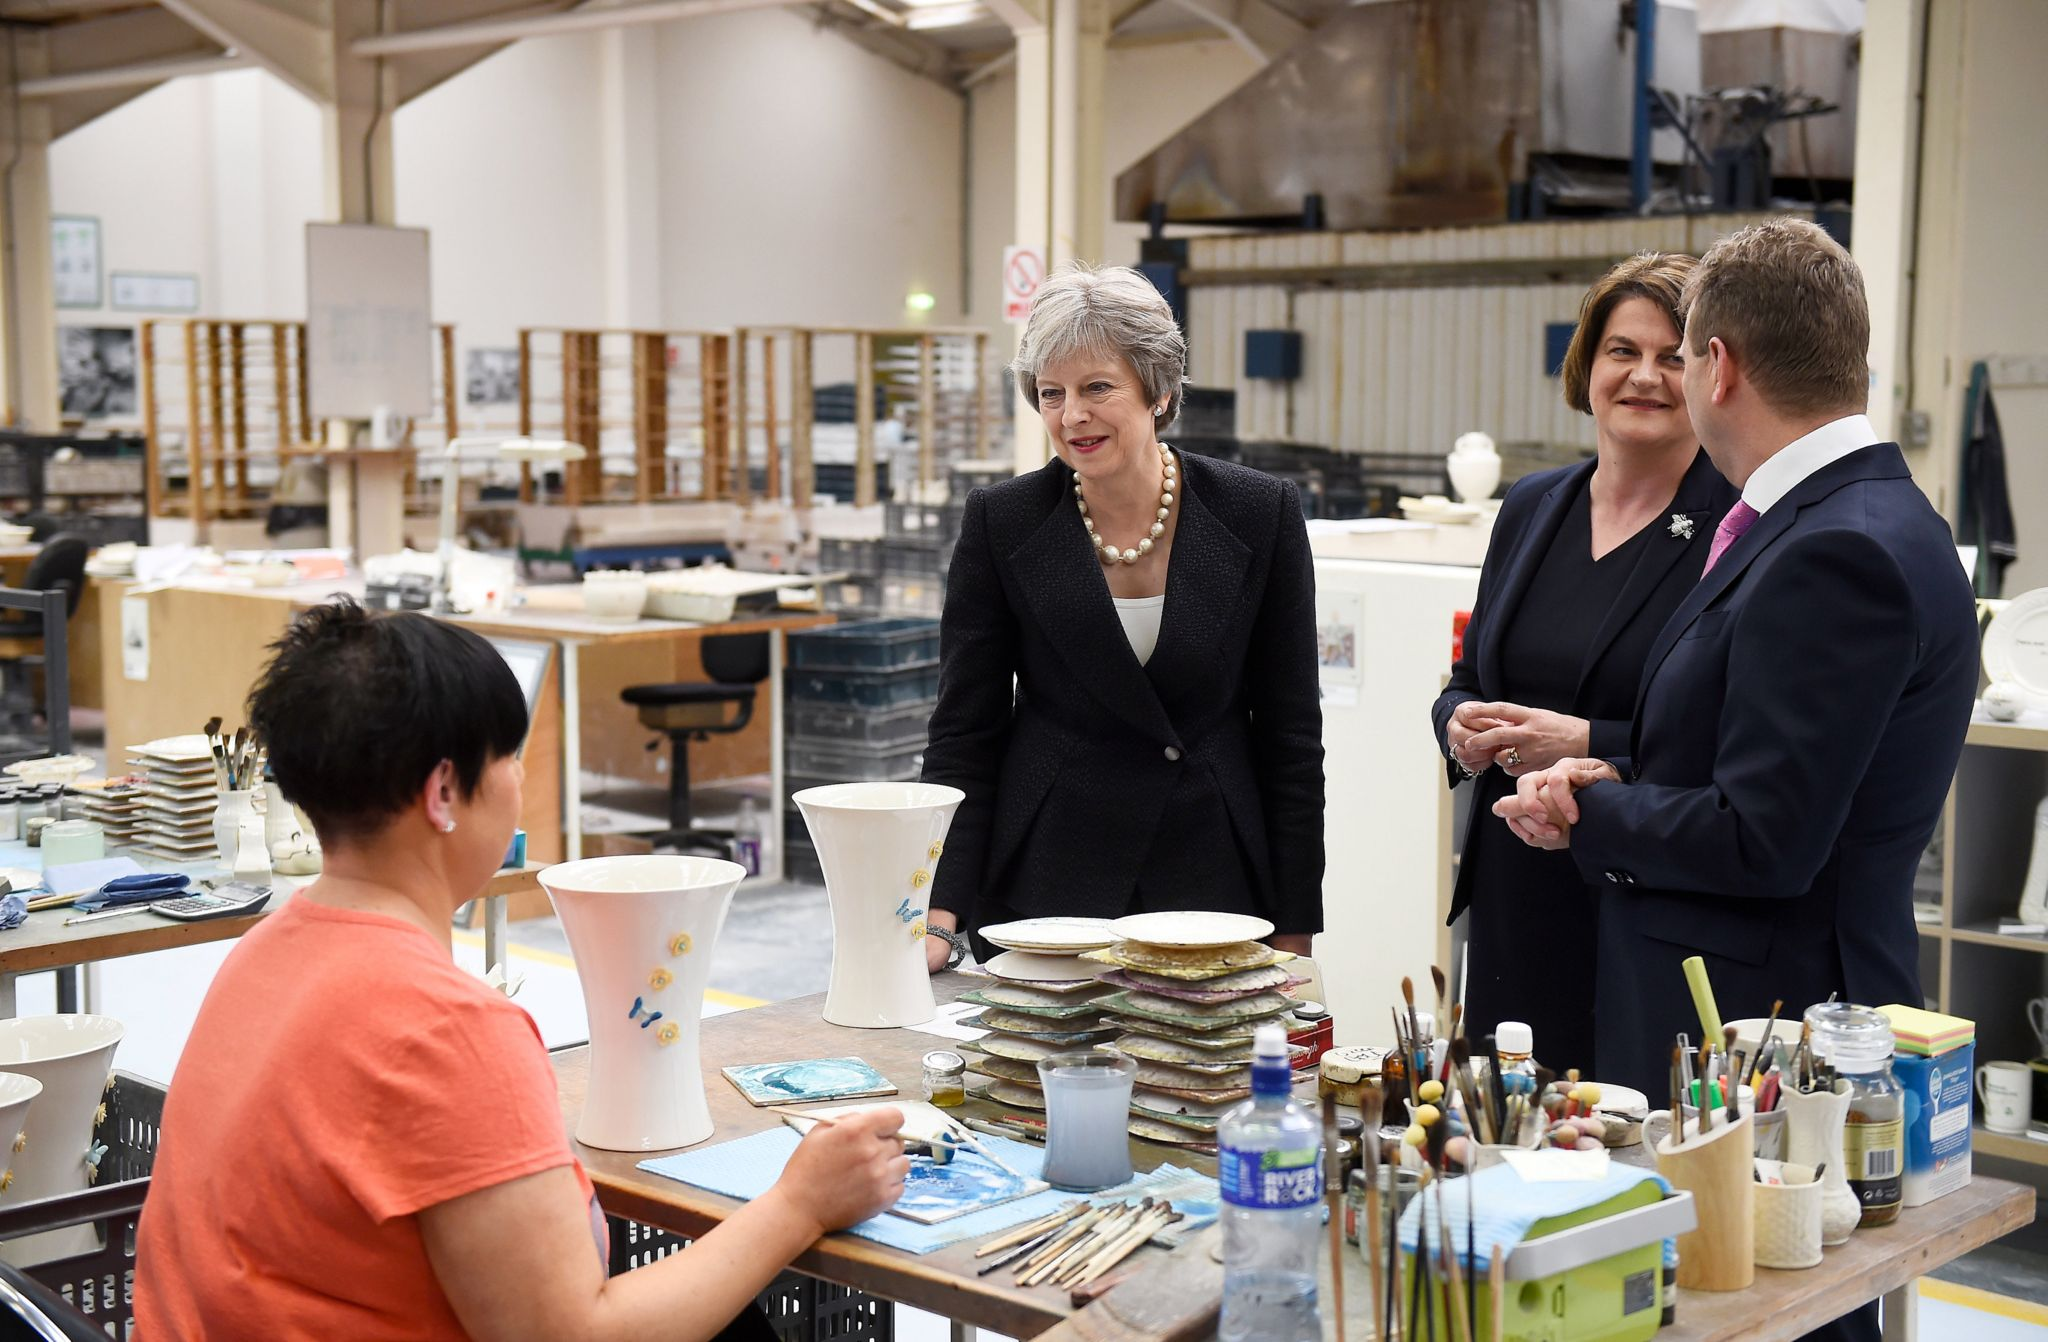 Theresa May and Arlene Foster visiting Belleek Pottery in County Fermanagh